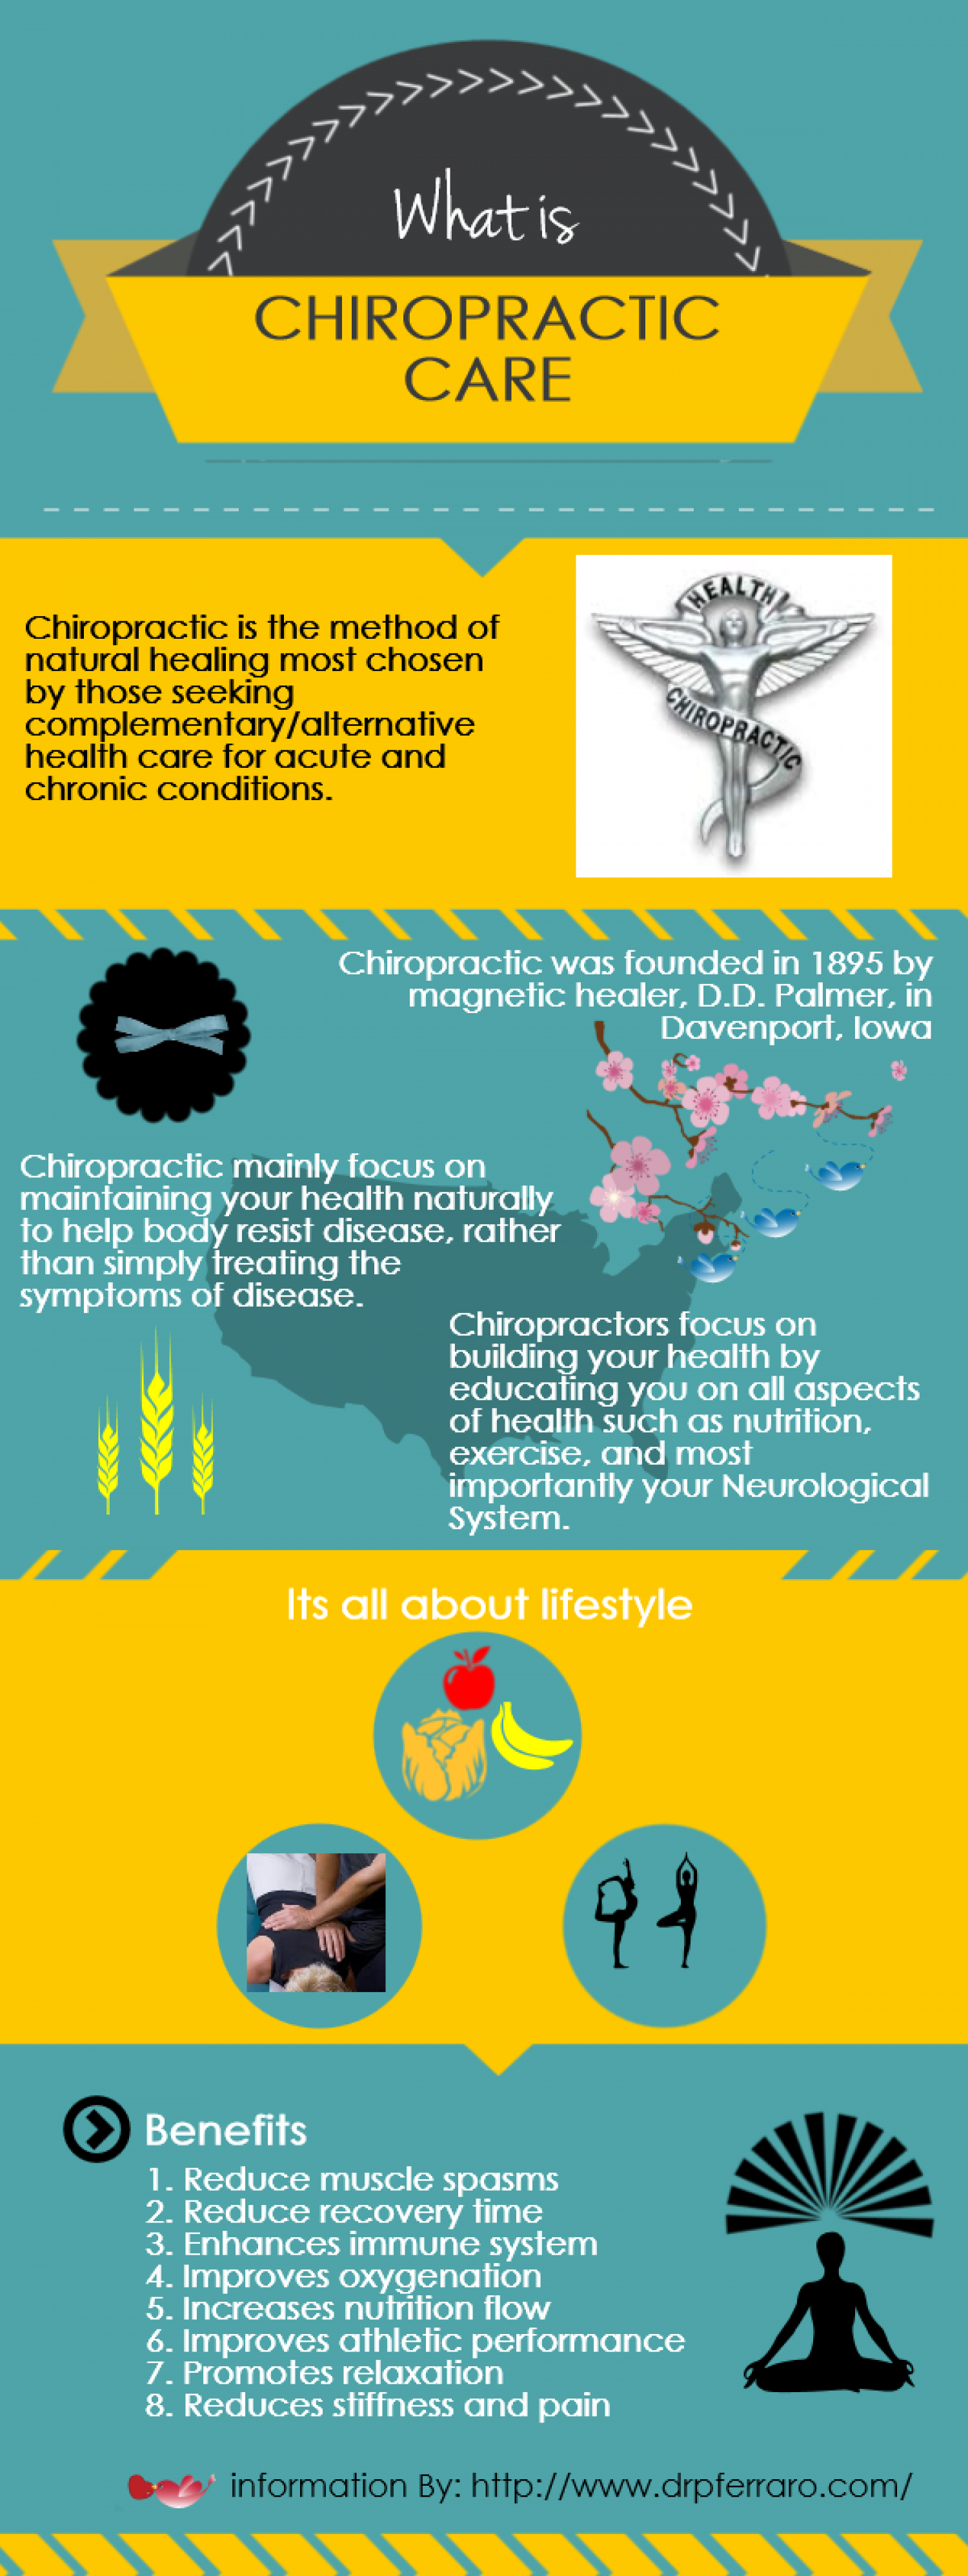 What is Chiropractic Care Infographic